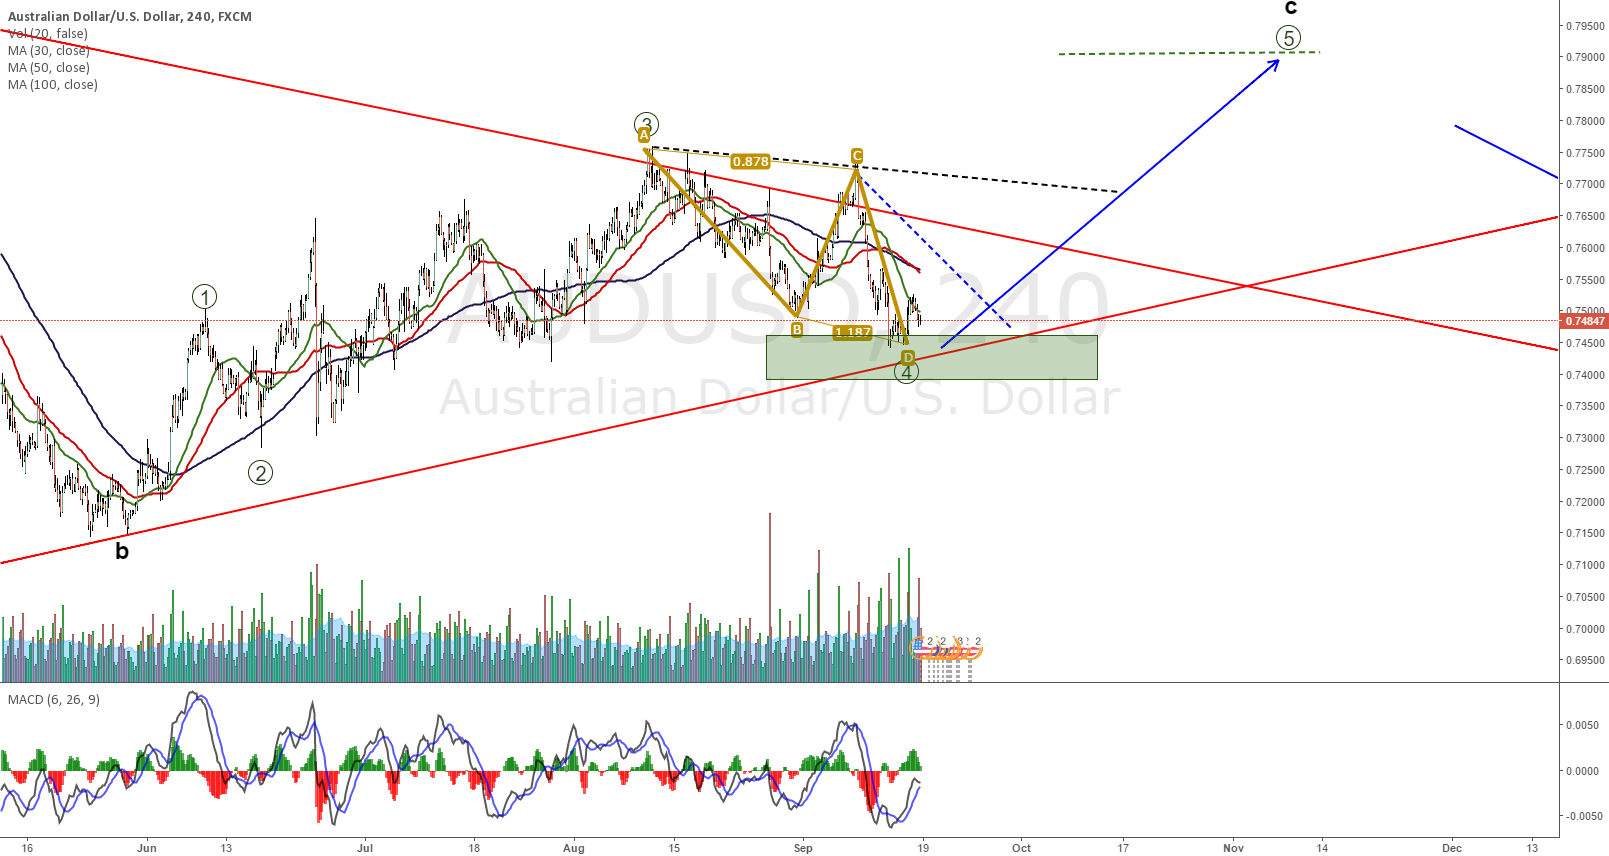 AUDUSD going for the last wave of correction